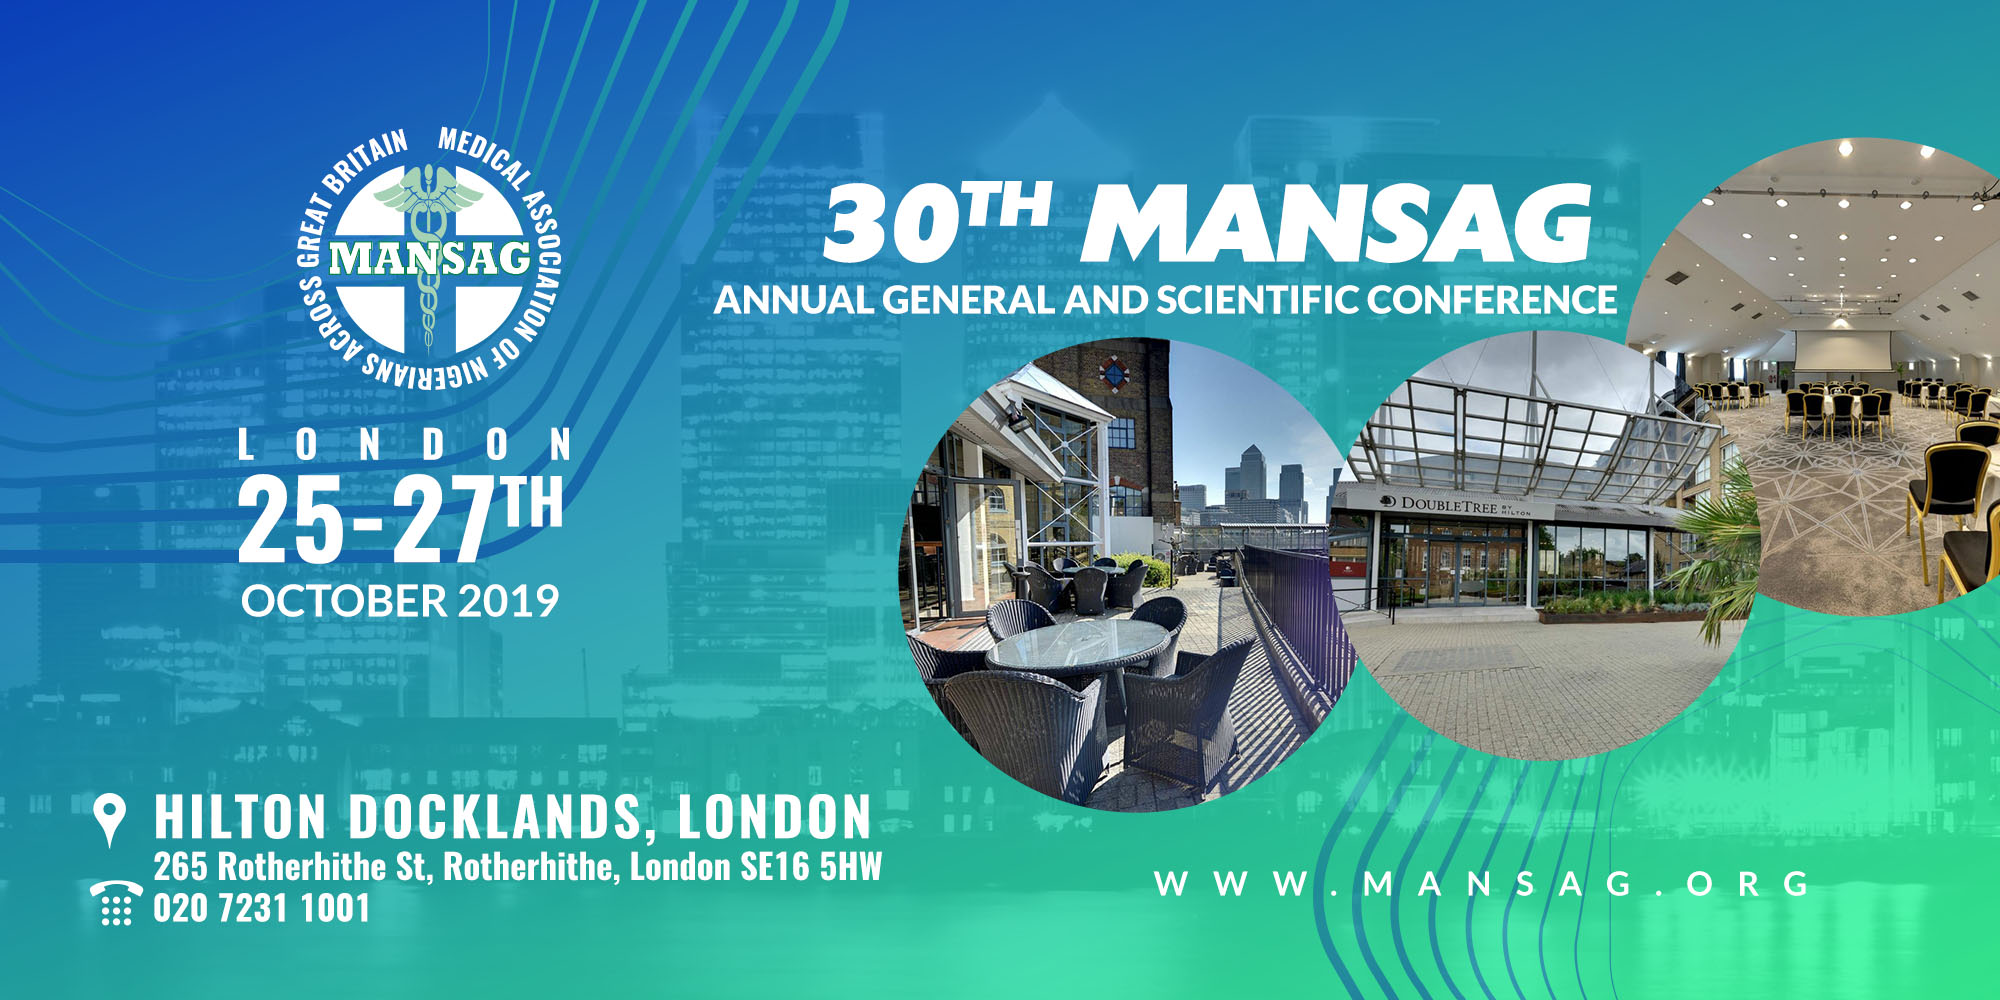 30th MANSAG Annual General and Scientific Conference, London, 25-27th October 2019